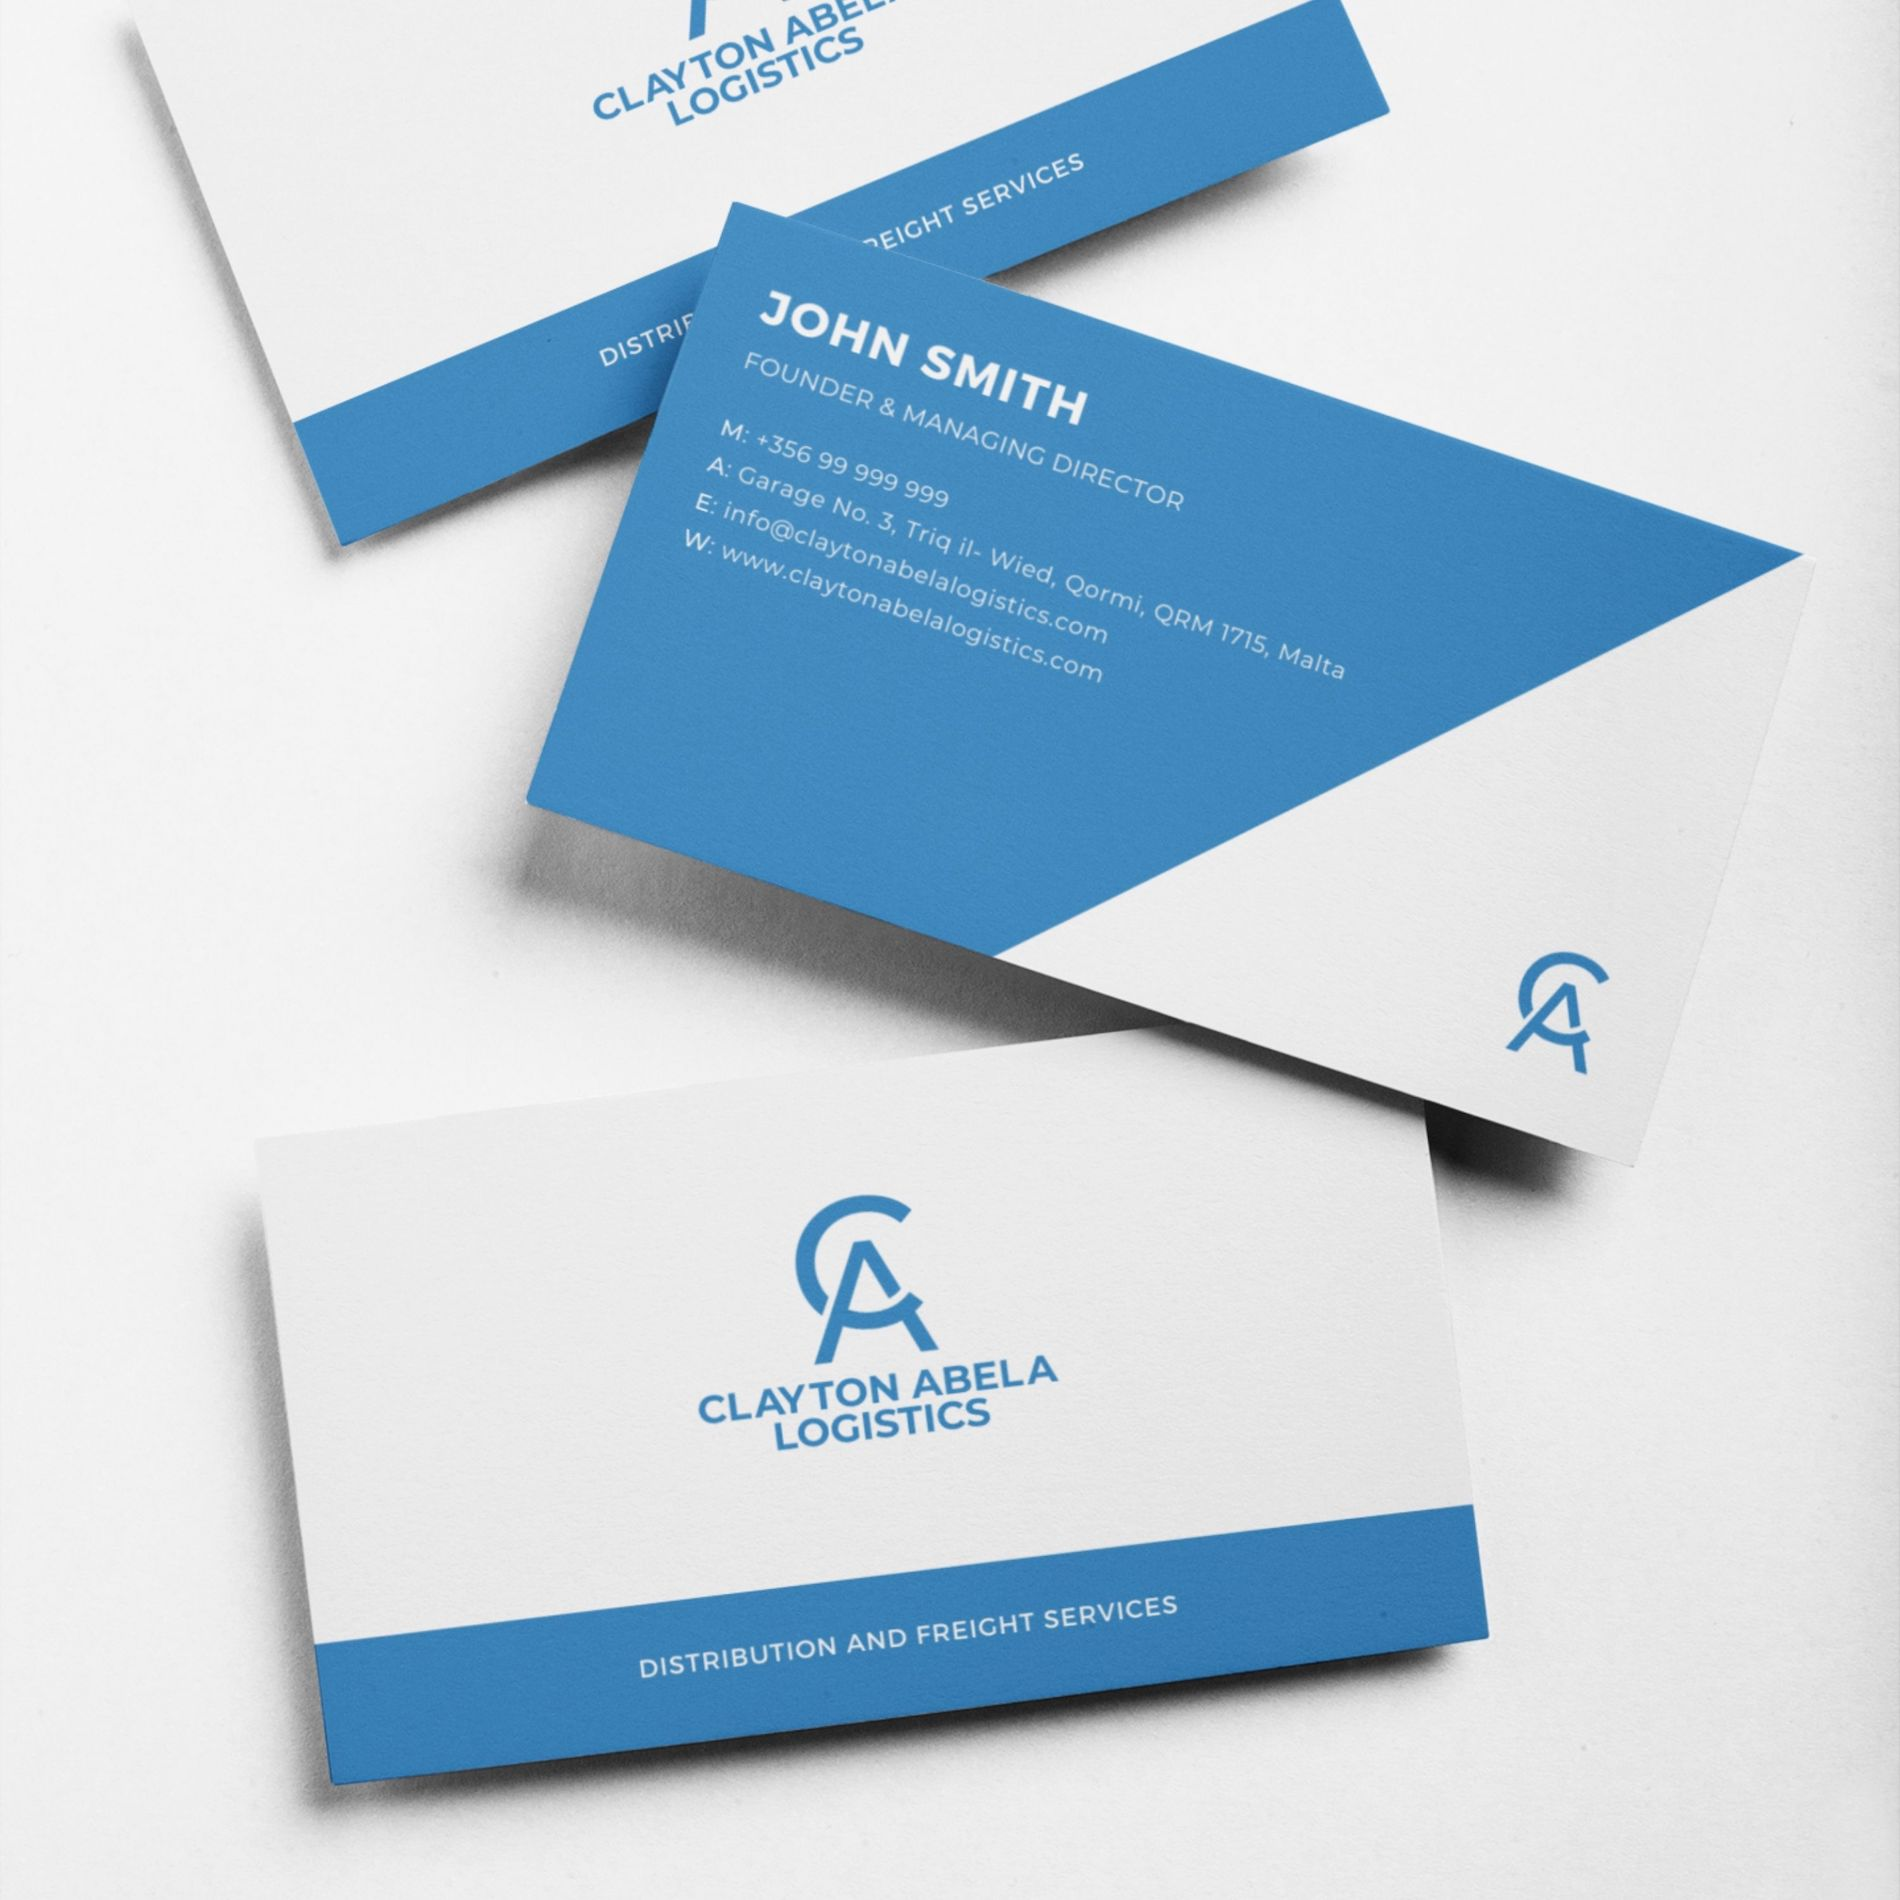 Bullshark designed business cards for Clayton Abela Logistics